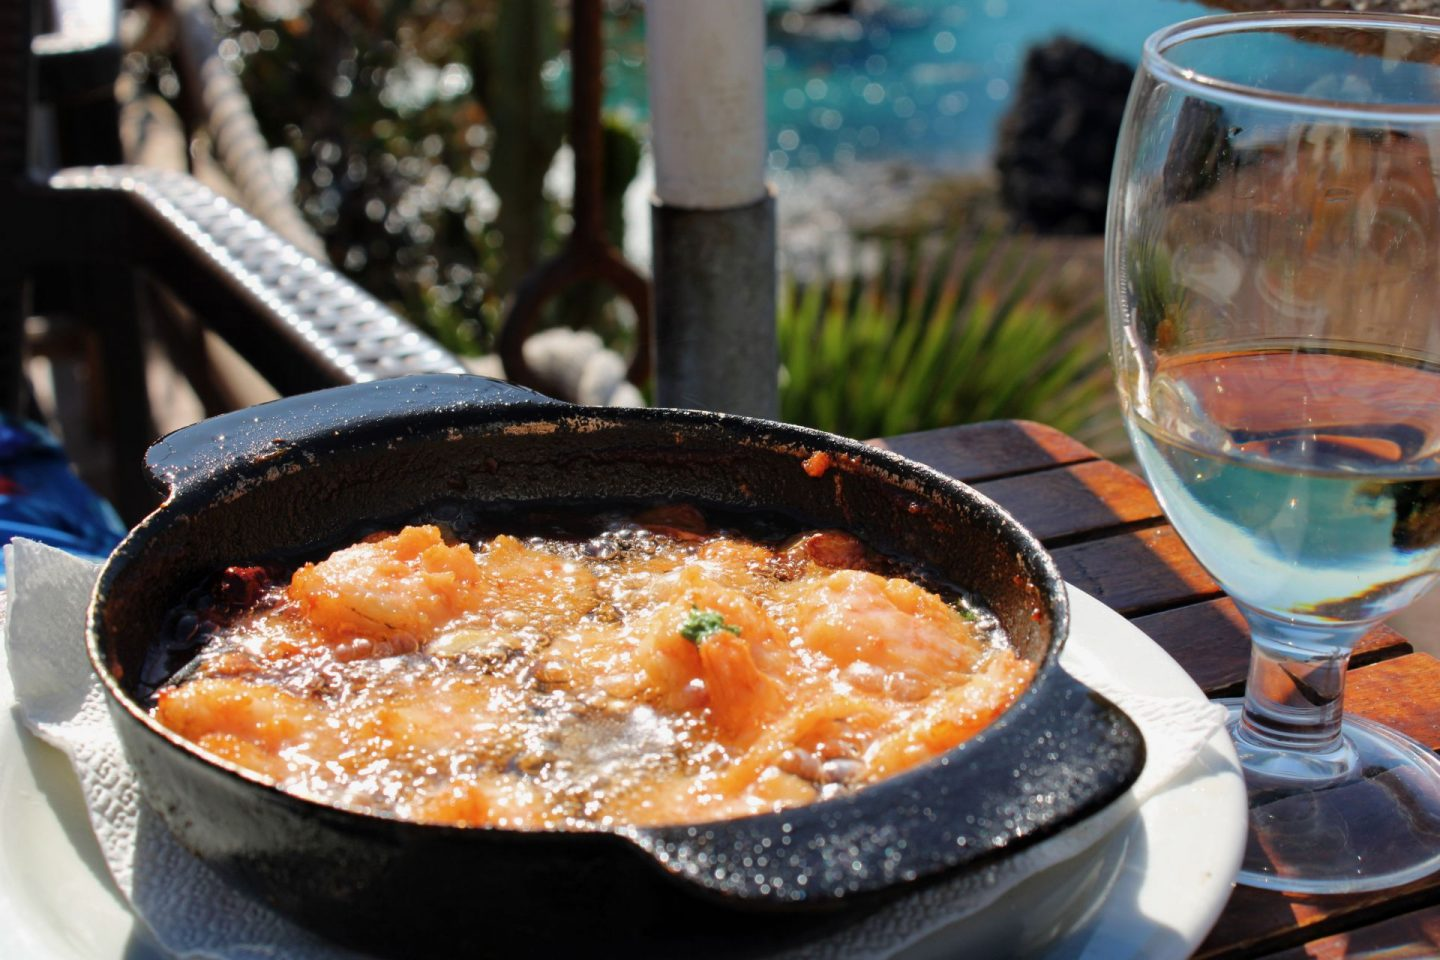 Garlic prawns sizzling in a black tapas dish, with a glass of white wine next to it and the sea in the background